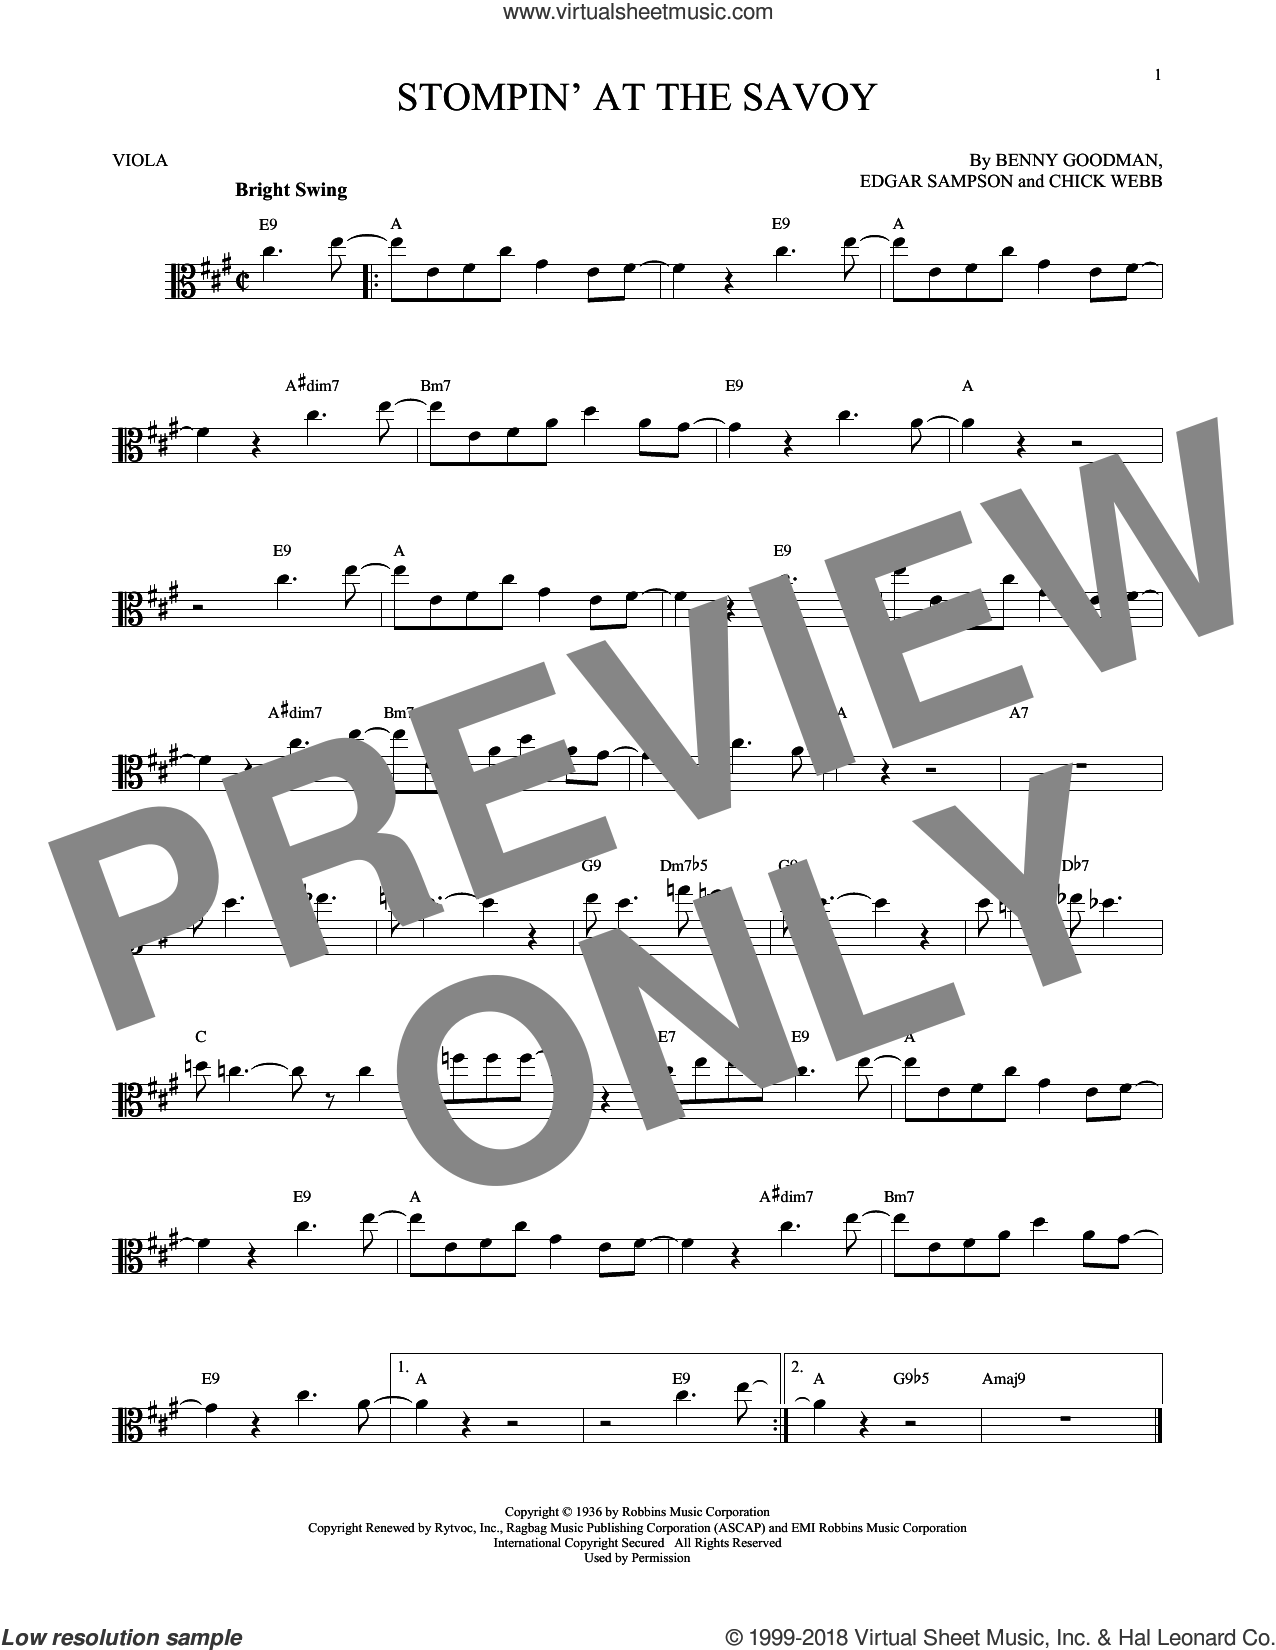 Stompin' At The Savoy sheet music for viola solo by Benny Goodman, Andy Razaf, Chick Webb and Edgar Sampson, intermediate skill level